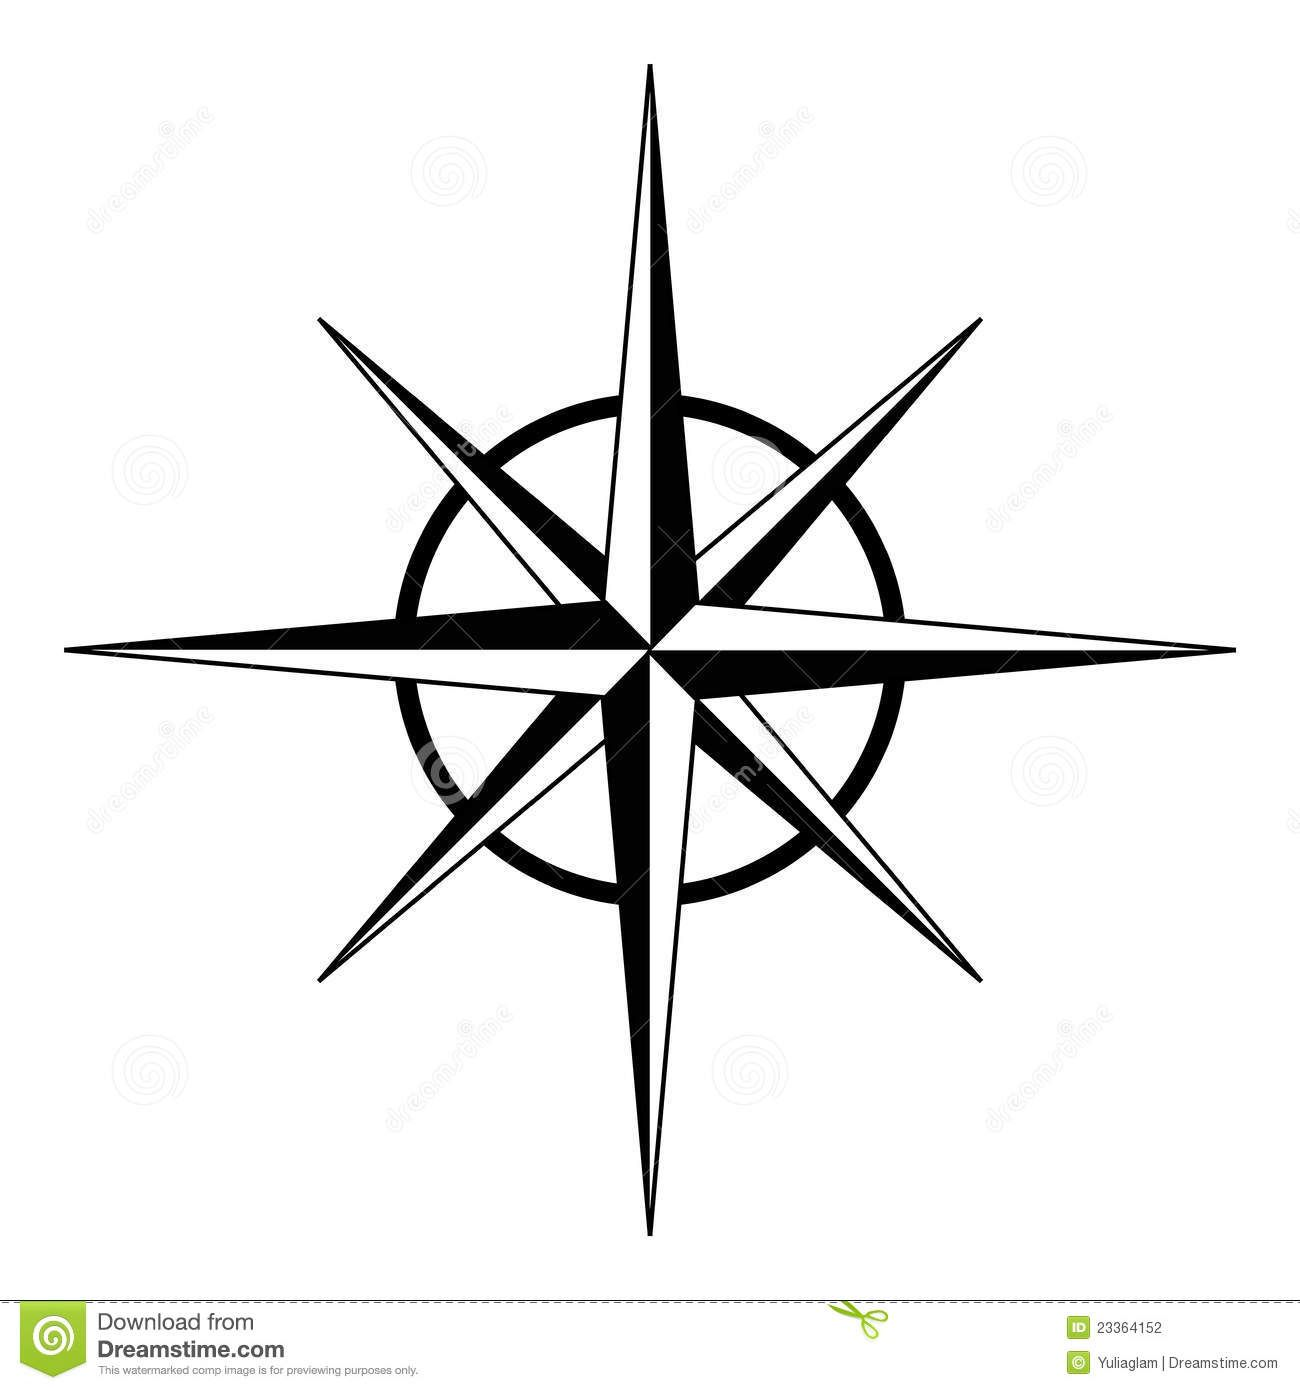 Easy To Draw Compass Rose Easy Drawing Free Download Clip Art Carwad